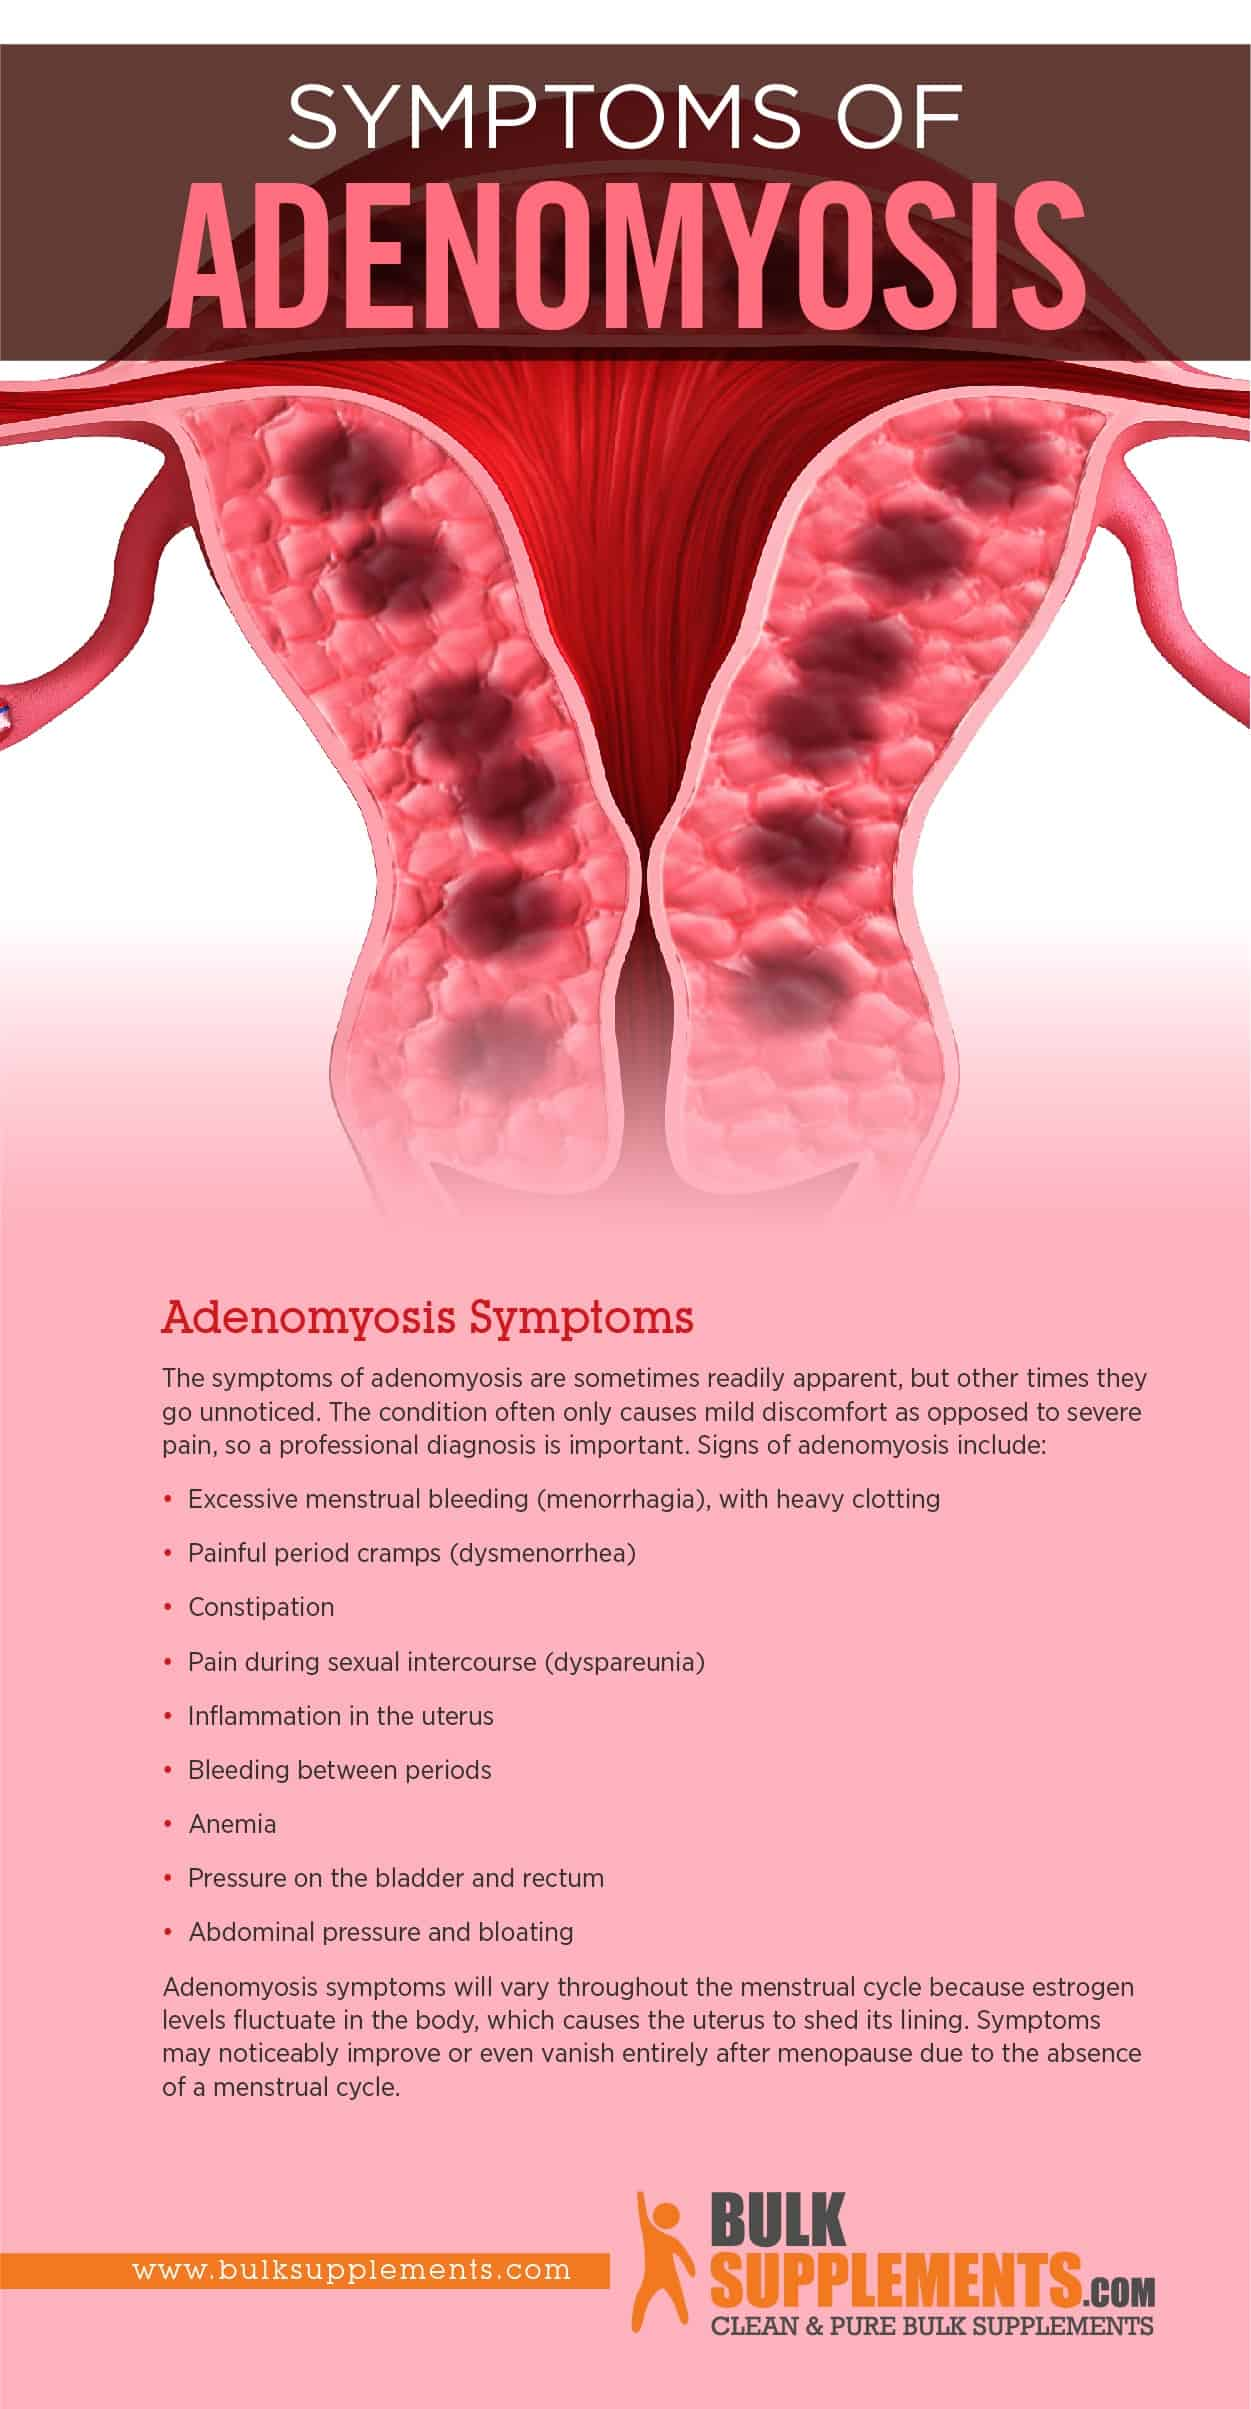 Adenomyosis Symptoms